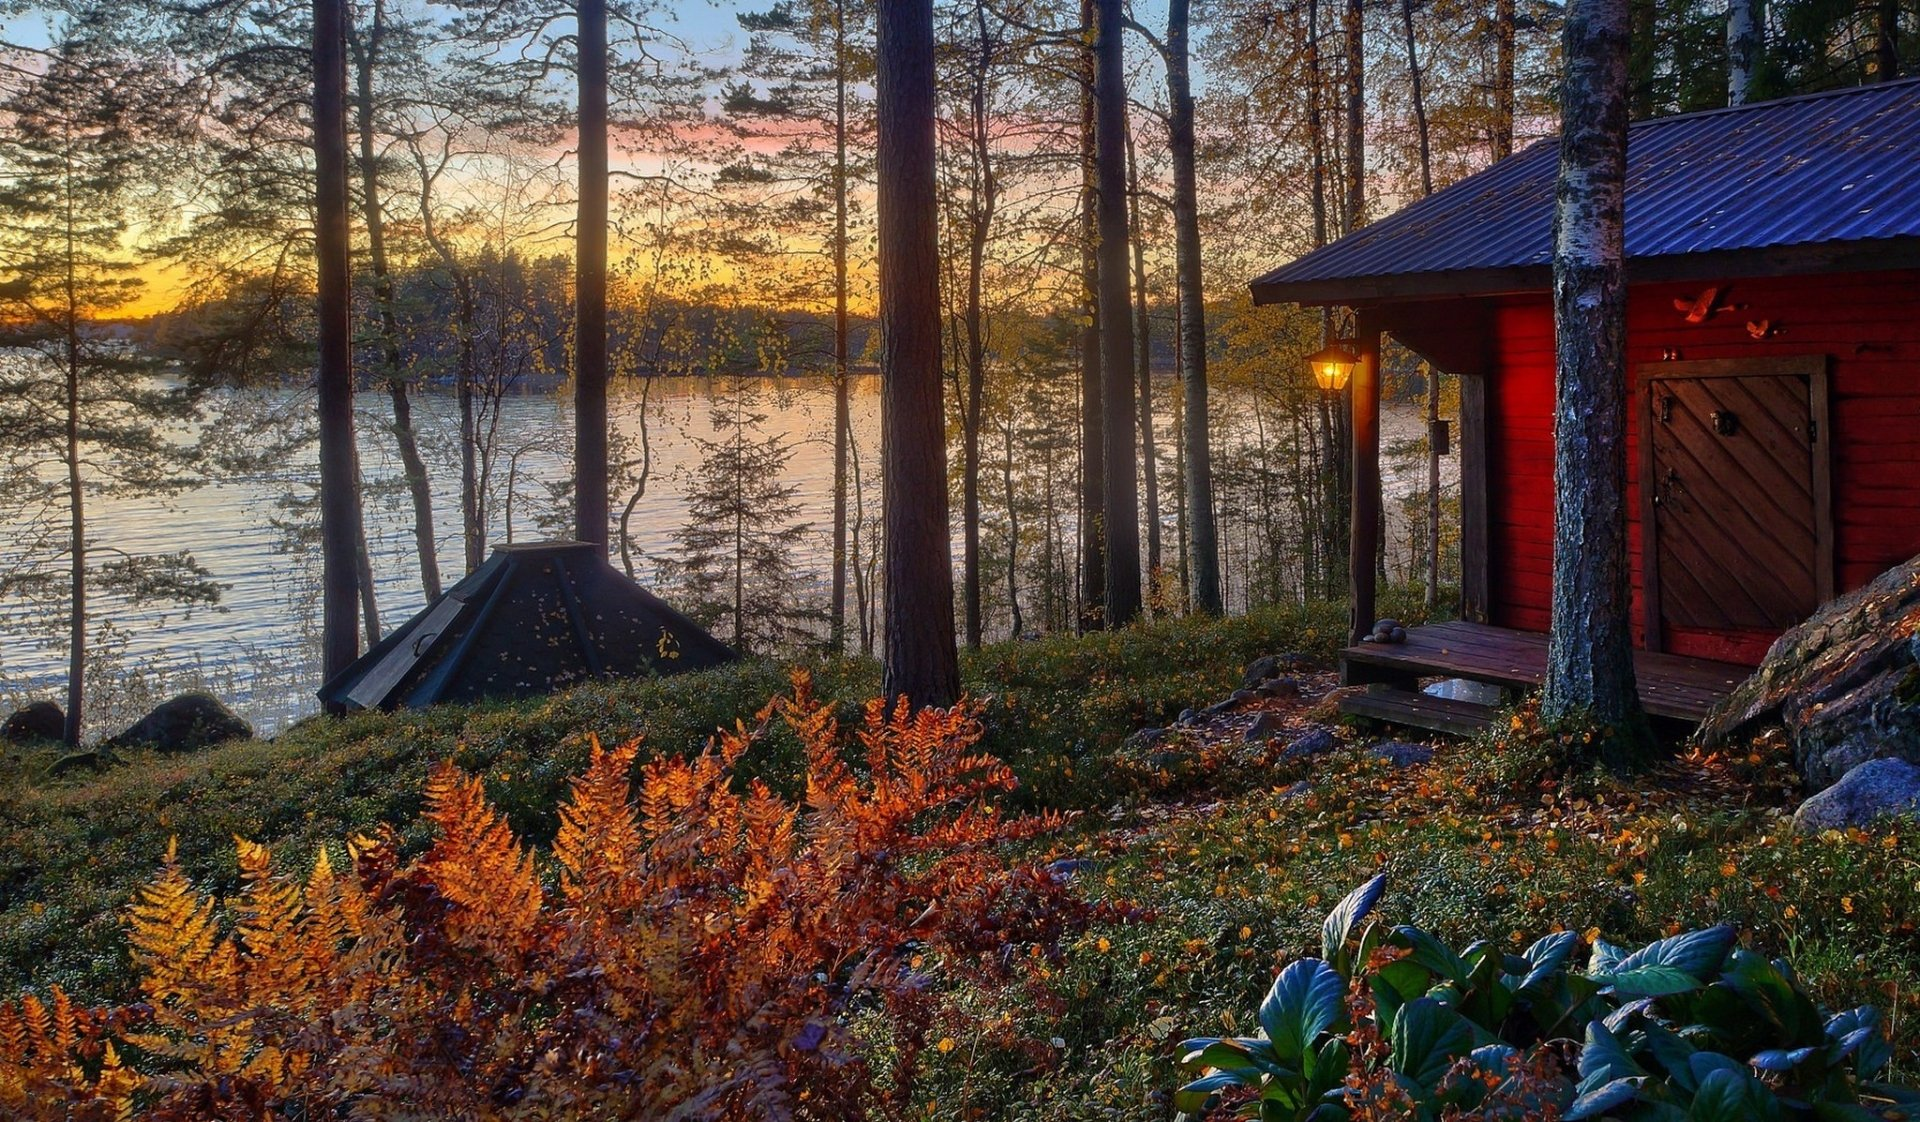 Fall Wallpaper Backgrounds Hd Cabin On The Lake Hd Wallpaper Background Image